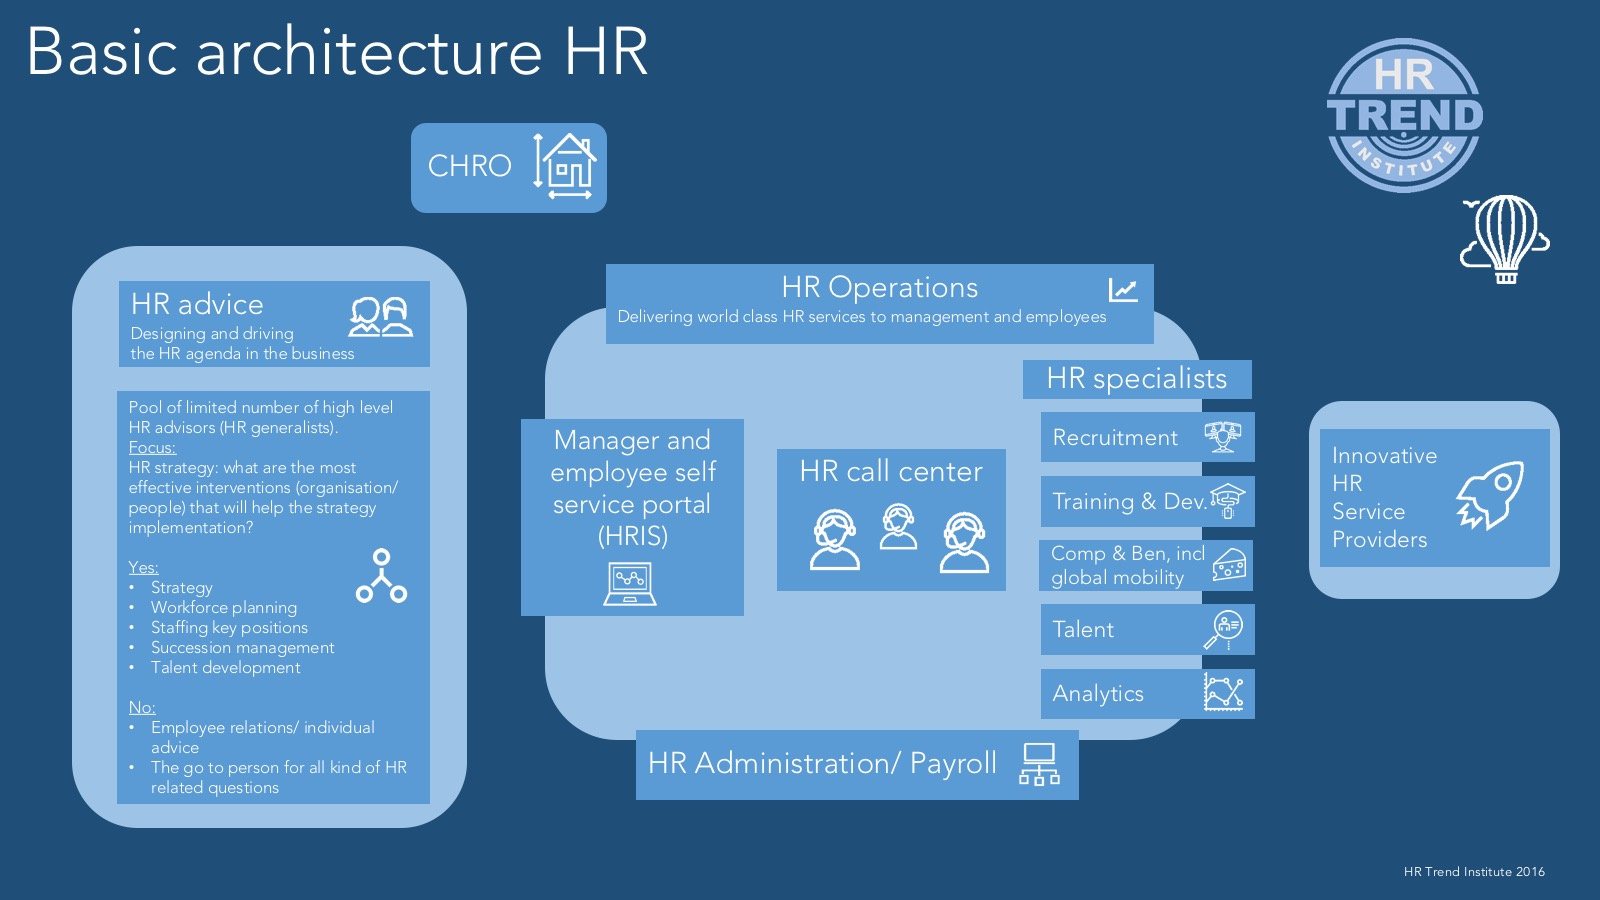 Basic Architecture HR